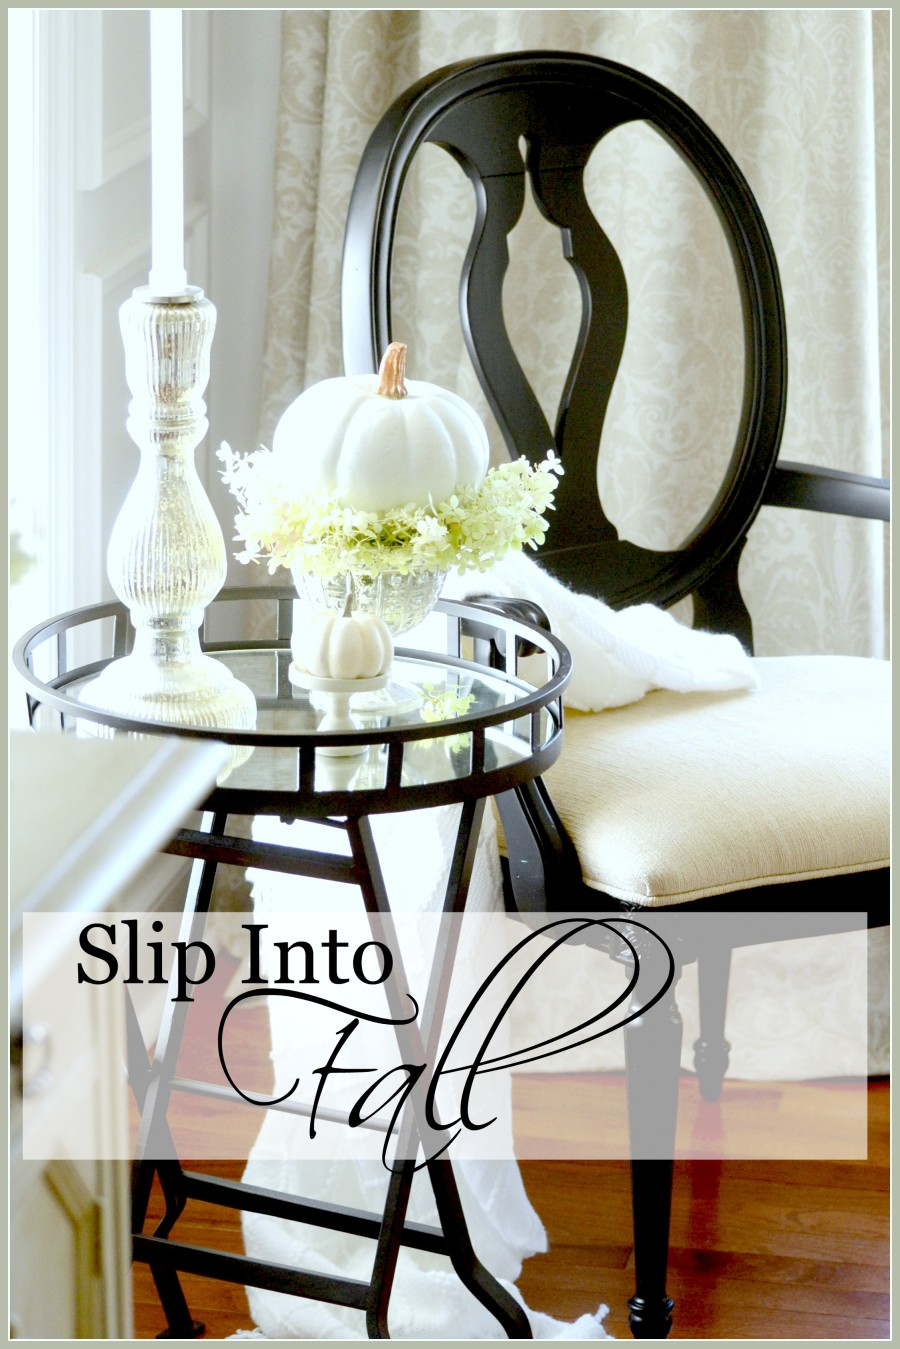 SLIP INTO FALL-6 Easy ways to bring early fall to your home